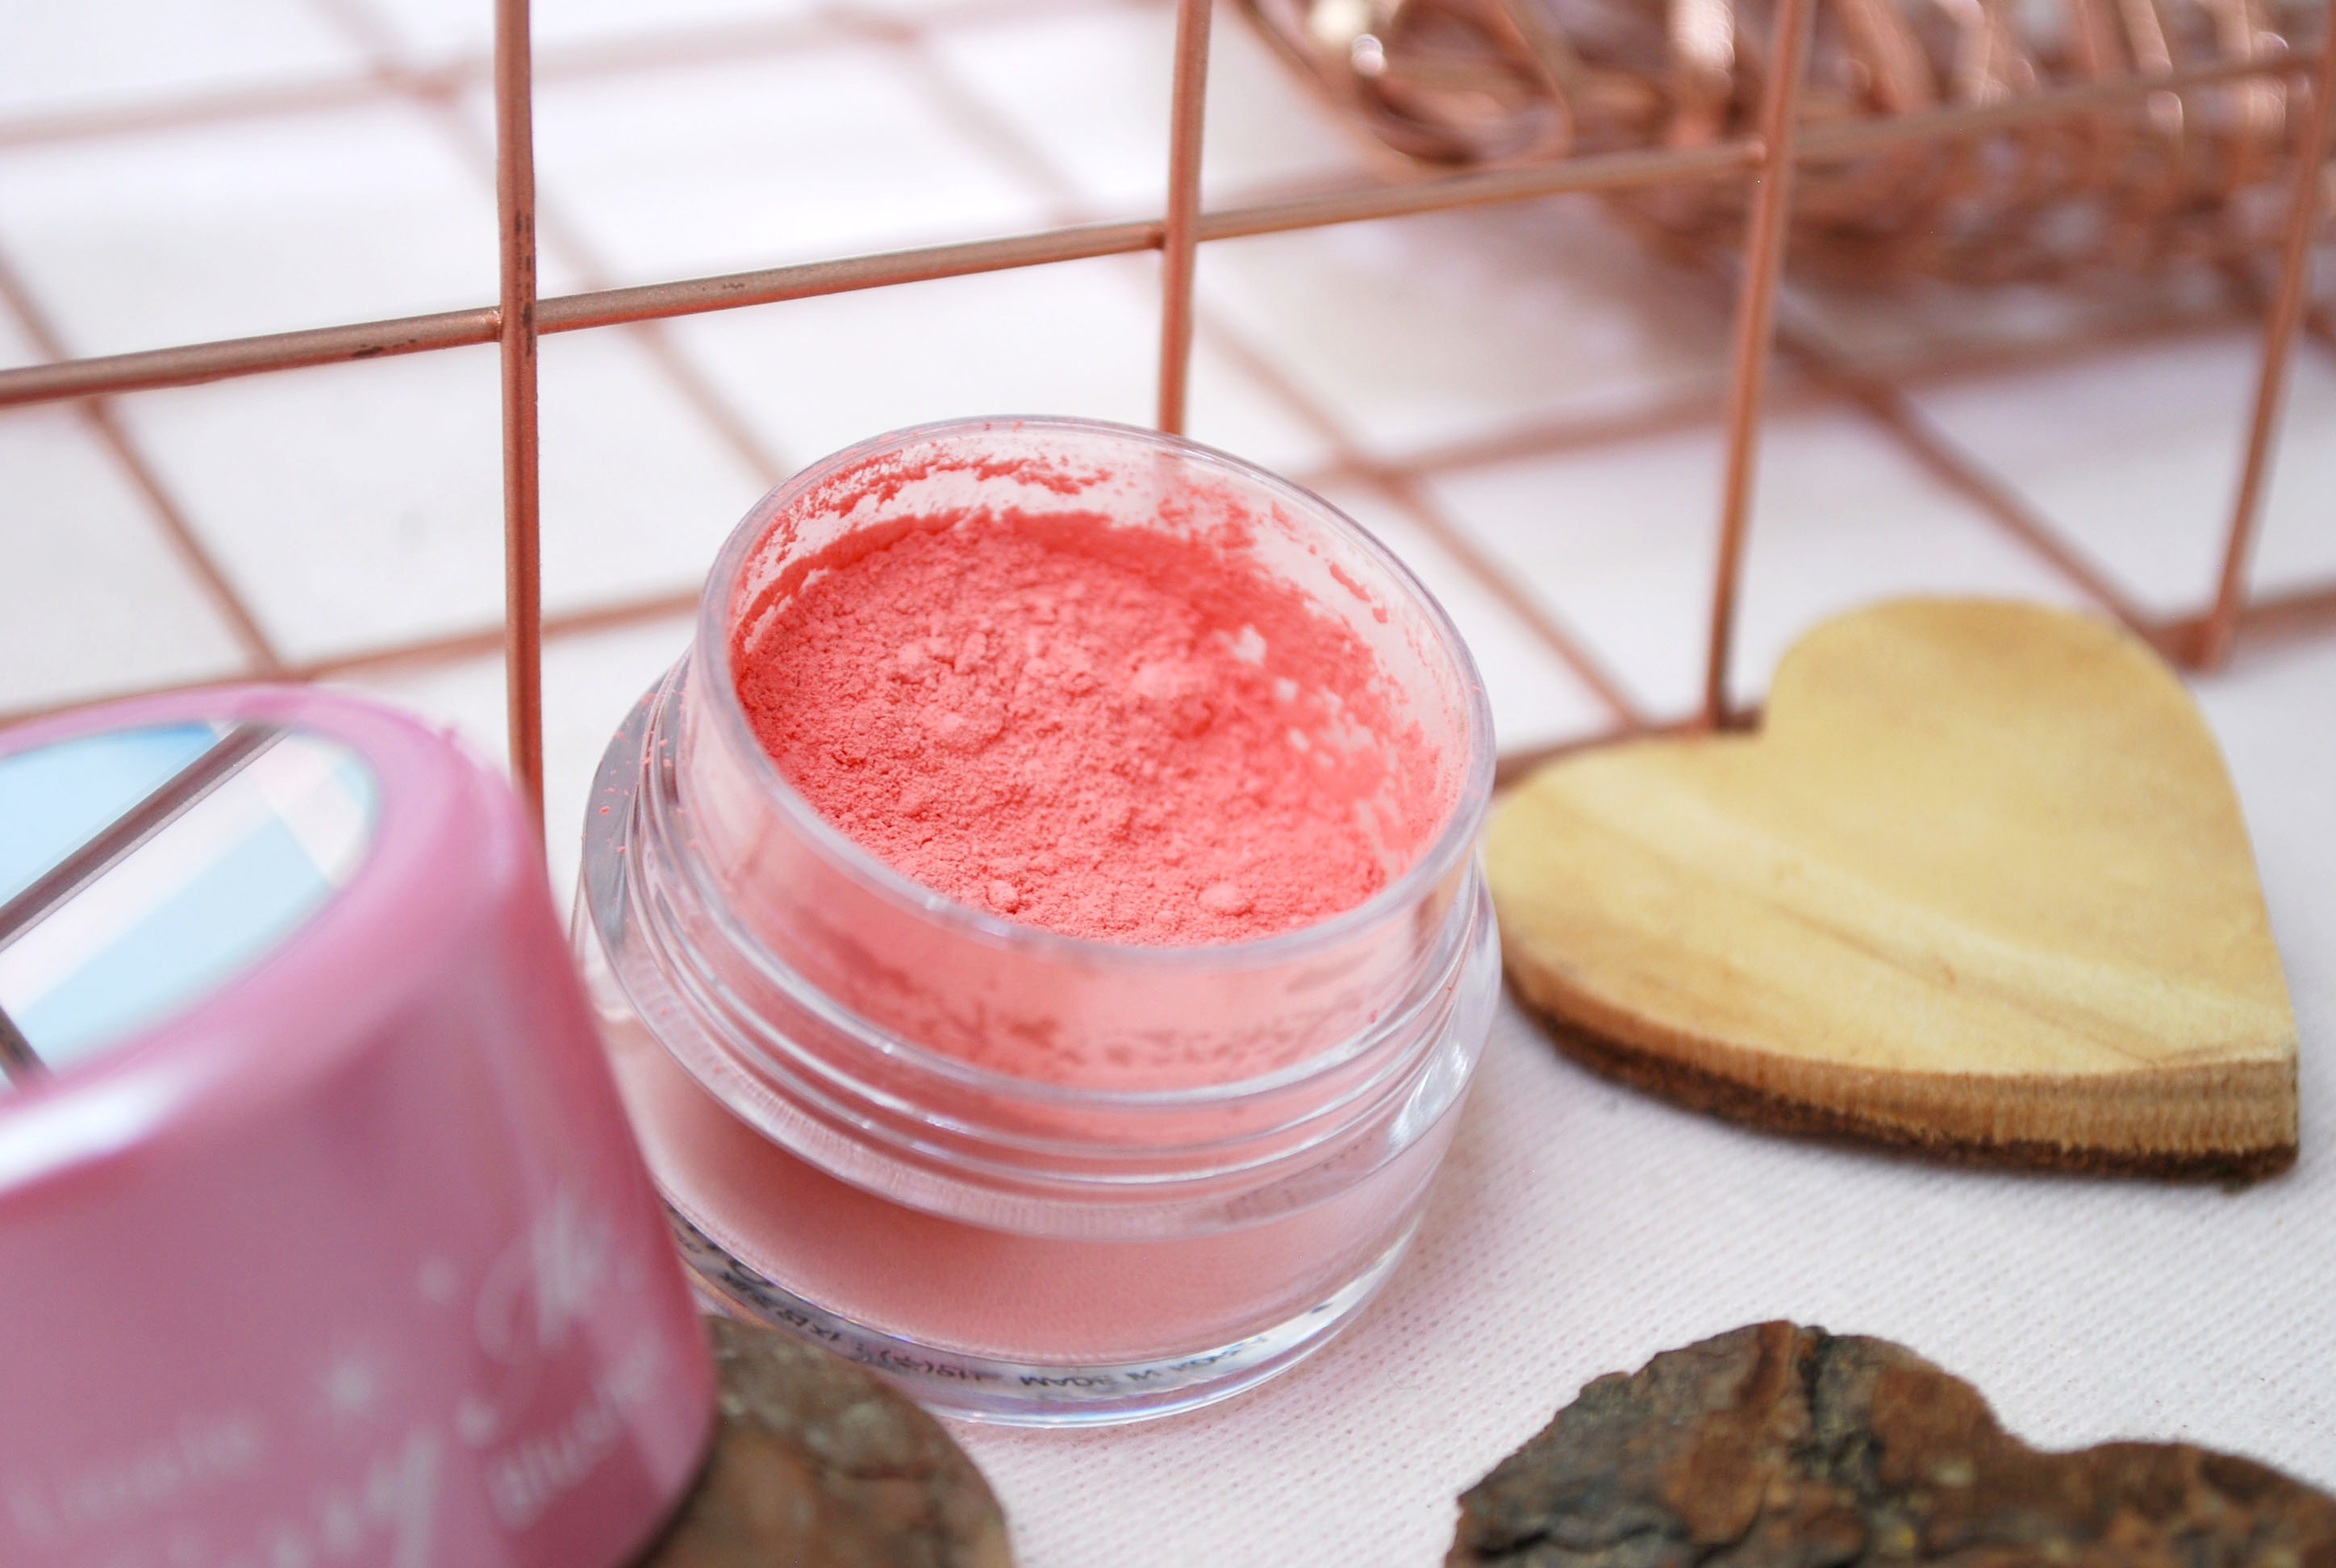 Lioele Carry Me Blusher review